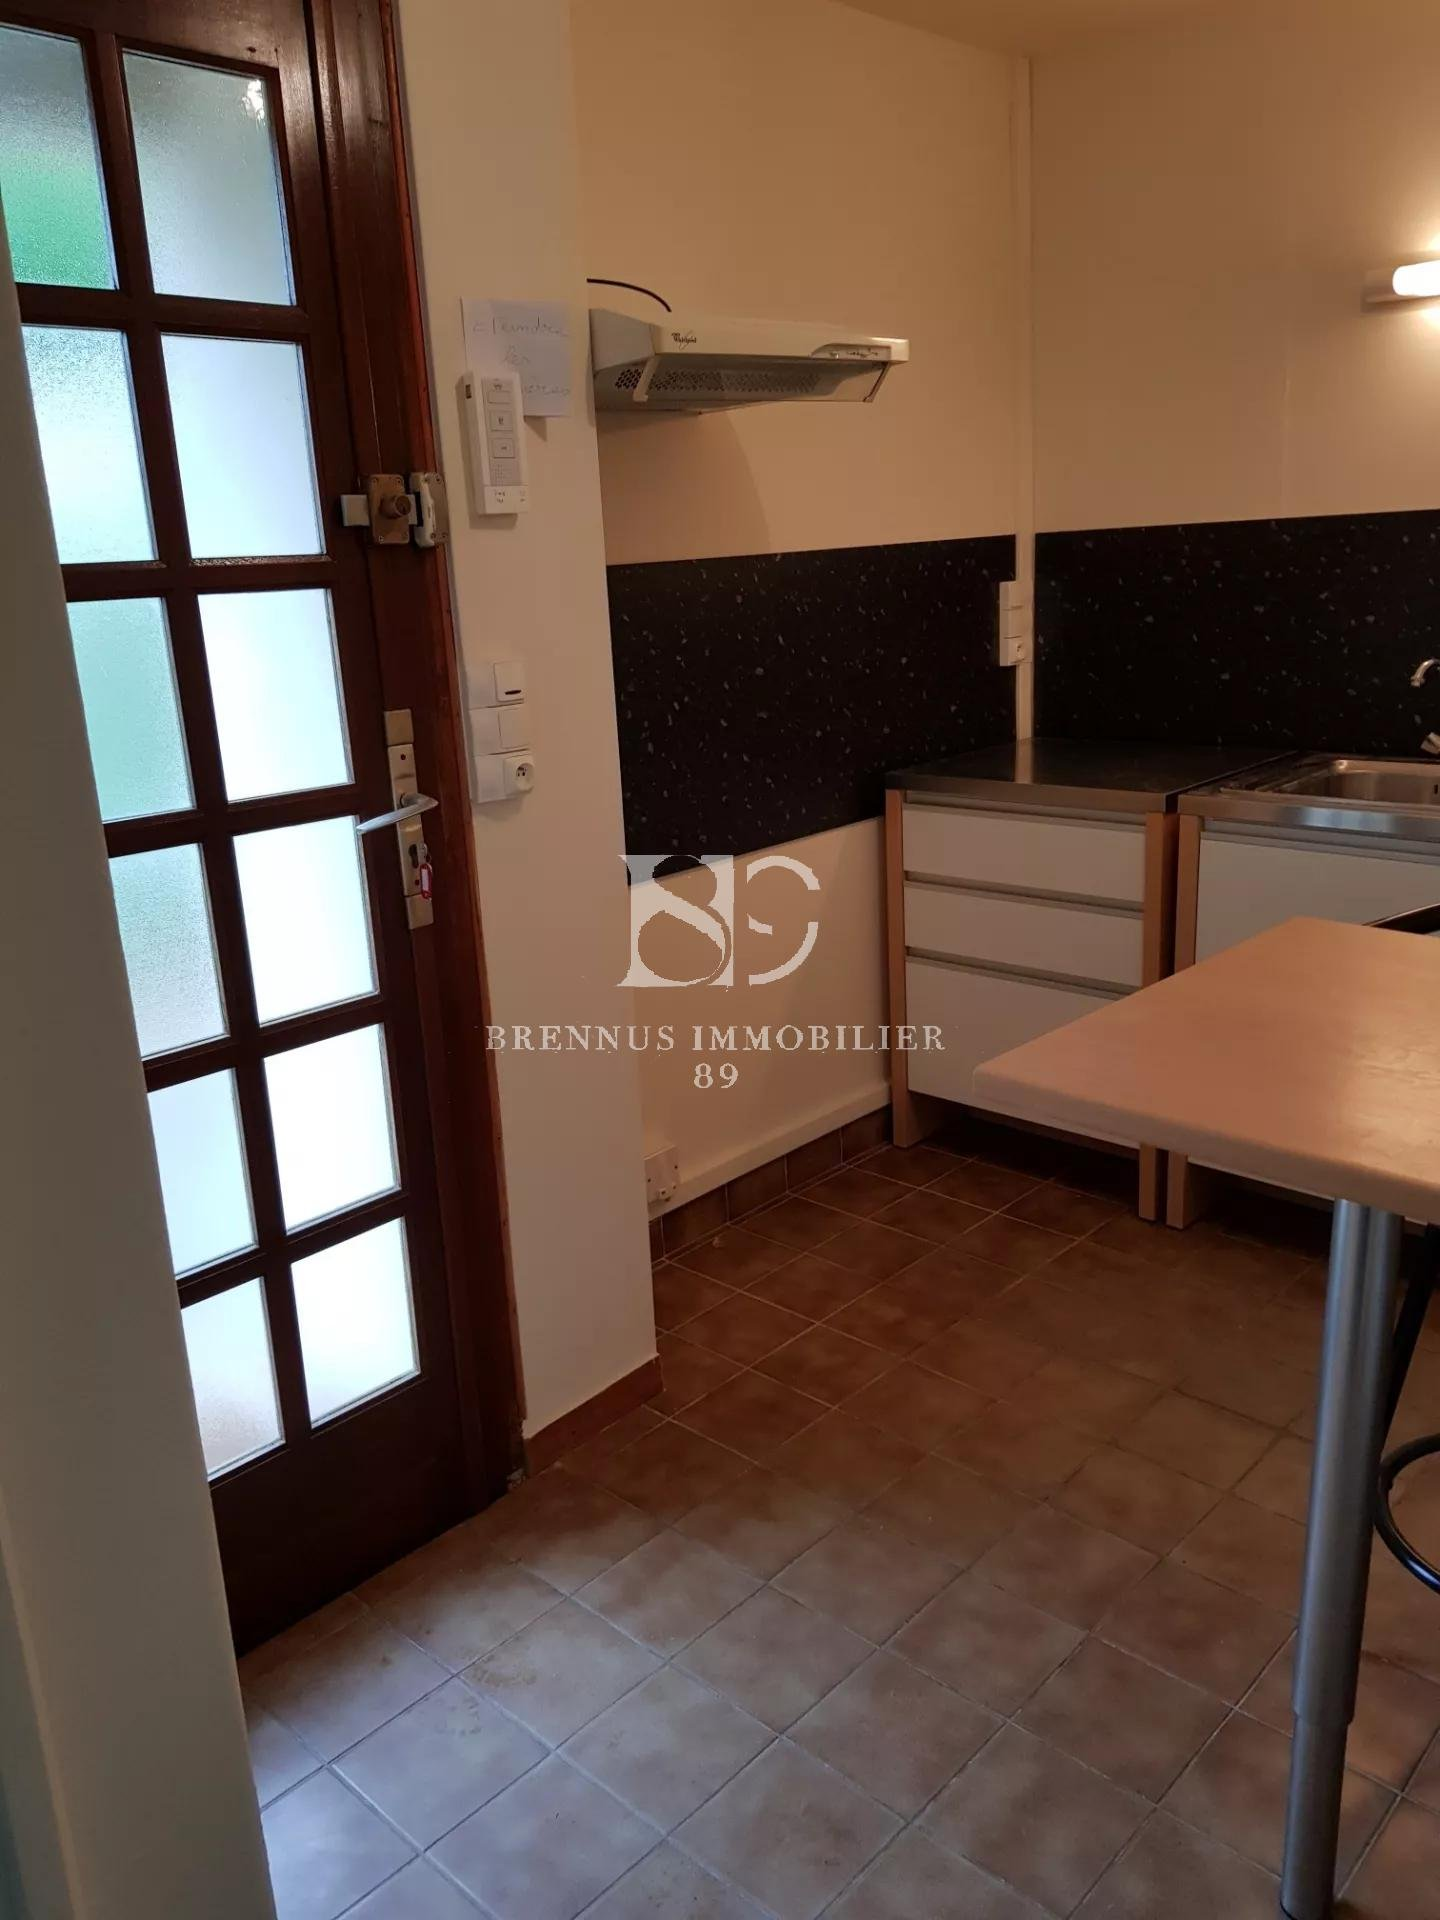 Appartement F2 - SOUCY